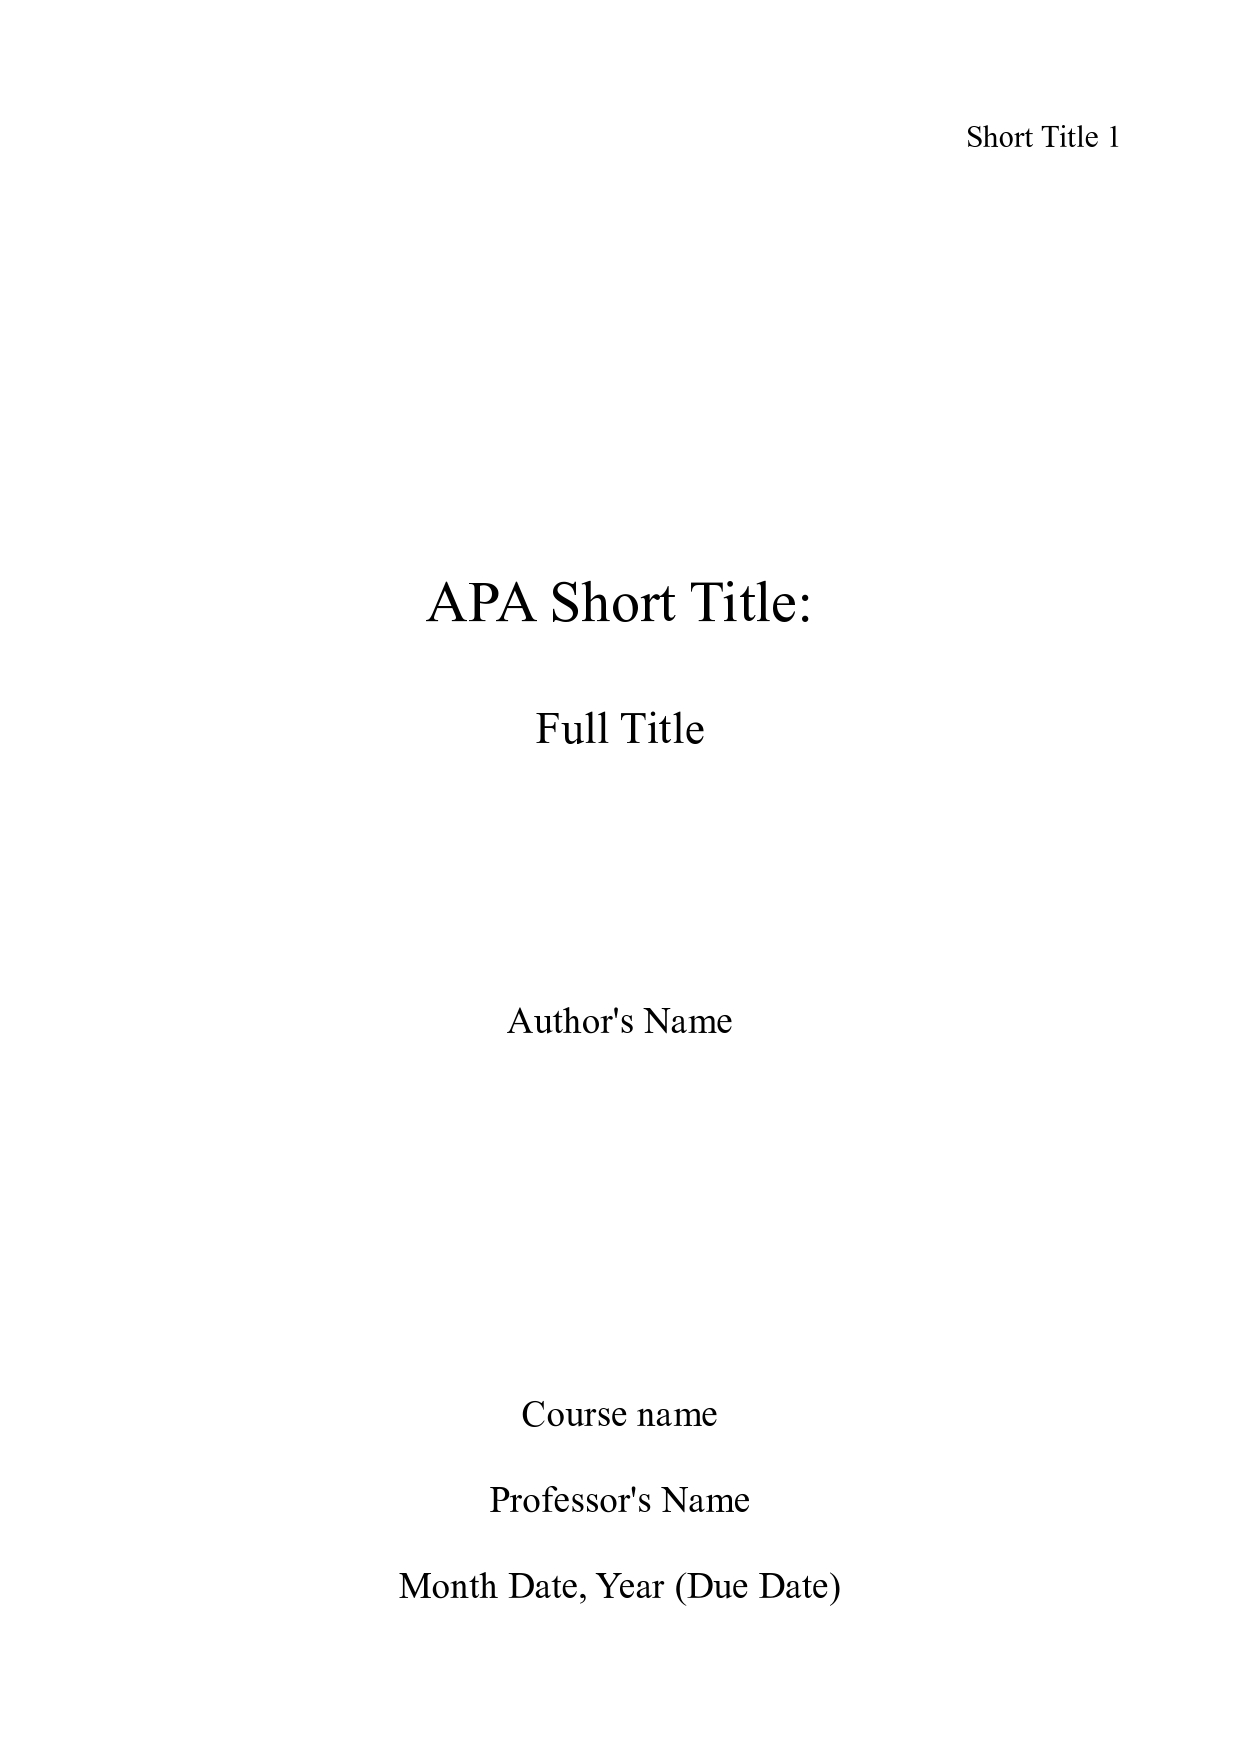 apa thesis format template all file resume sample apa thesis format template citation machine format generate citations apa mla apa essay help style